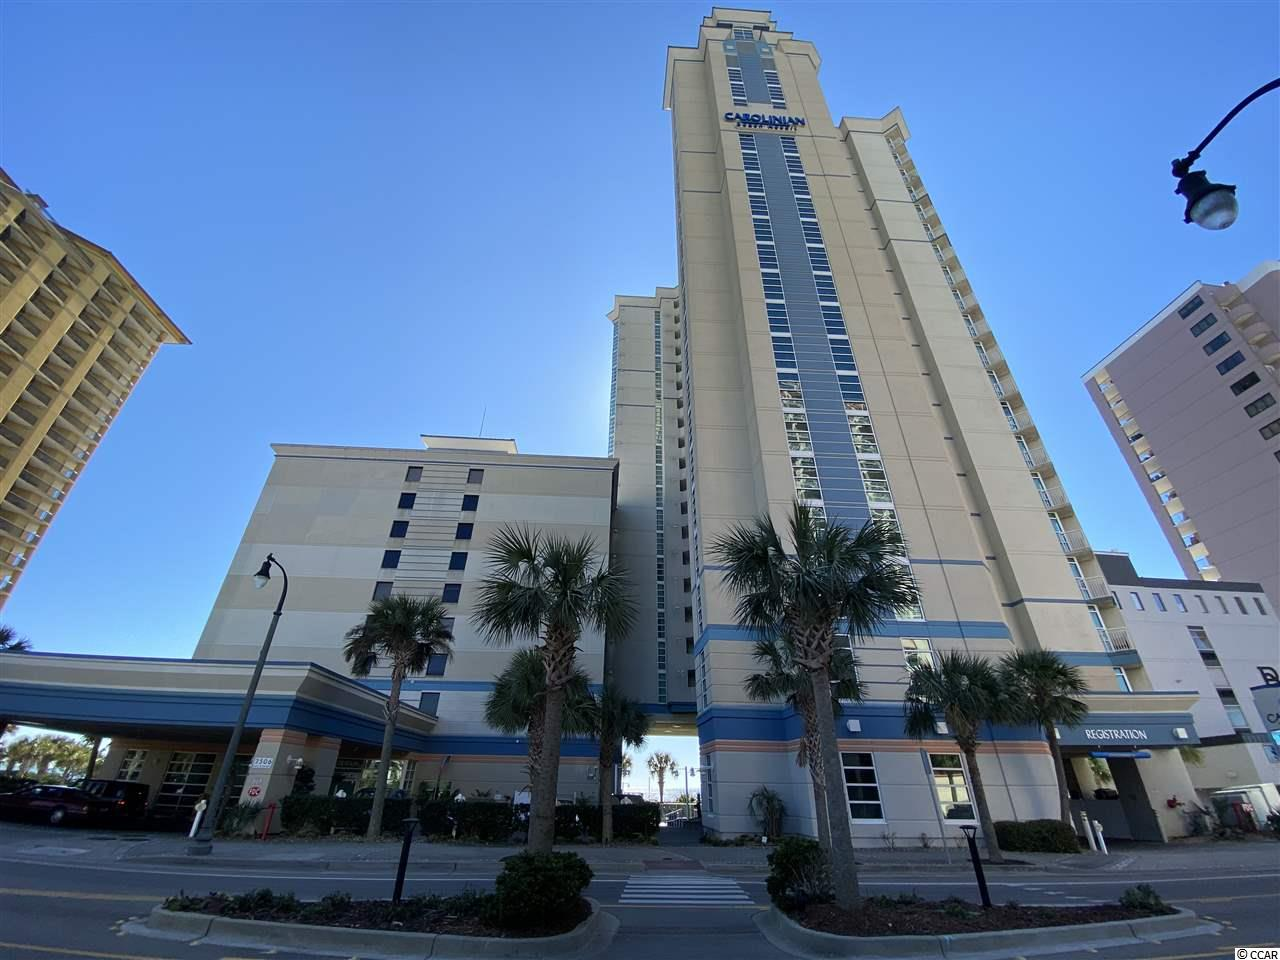 Come to the beach enjoy one of the most unique oceanfront corner condos in Myrtle Beach. The main Architectural feature of this condo is the glass side wall in the Living Area. See 3D Virtual Tour at https://my.matterport.com/show/?m=dbJb1LT5UL2&brand=0 . Because the neighboring building is set so far back, you can sit in the living room and gaze down the beach at The Sky Wheel, Pier, Sunsets and the downtown Myrtle Beach Boardwalk area. Both bedrooms also share this amazing view and have access to a shared side balcony. This condo has the same ceramic tile flooring throughout the spacious floor plan. Other recent upgrades are HVAC unit in 2016, stainless appliances in 2020, granite countertops, new washer/dryer in 2020. The Master Suite bathroom has an upgraded walk-in glass-door handicap accessible Shower. The Carolinian Resort features ocean front pools, spas, and a lazy river that is enclosed/heated in the winter. The building is located in the heart of downtown Myrtle Beach. It is just blocks away from the Boardwalk,  Convention Center, Broadway at the Beach, amusement rides, and dozens of restaurant/entertainment venues. Hoa fee includes interior electricity, internet, water/sewer, cable, pest control and future building maintenance. Insurance billed separately. No pets allowed. Condo is sold furnished, but personal items and some art do not convey.